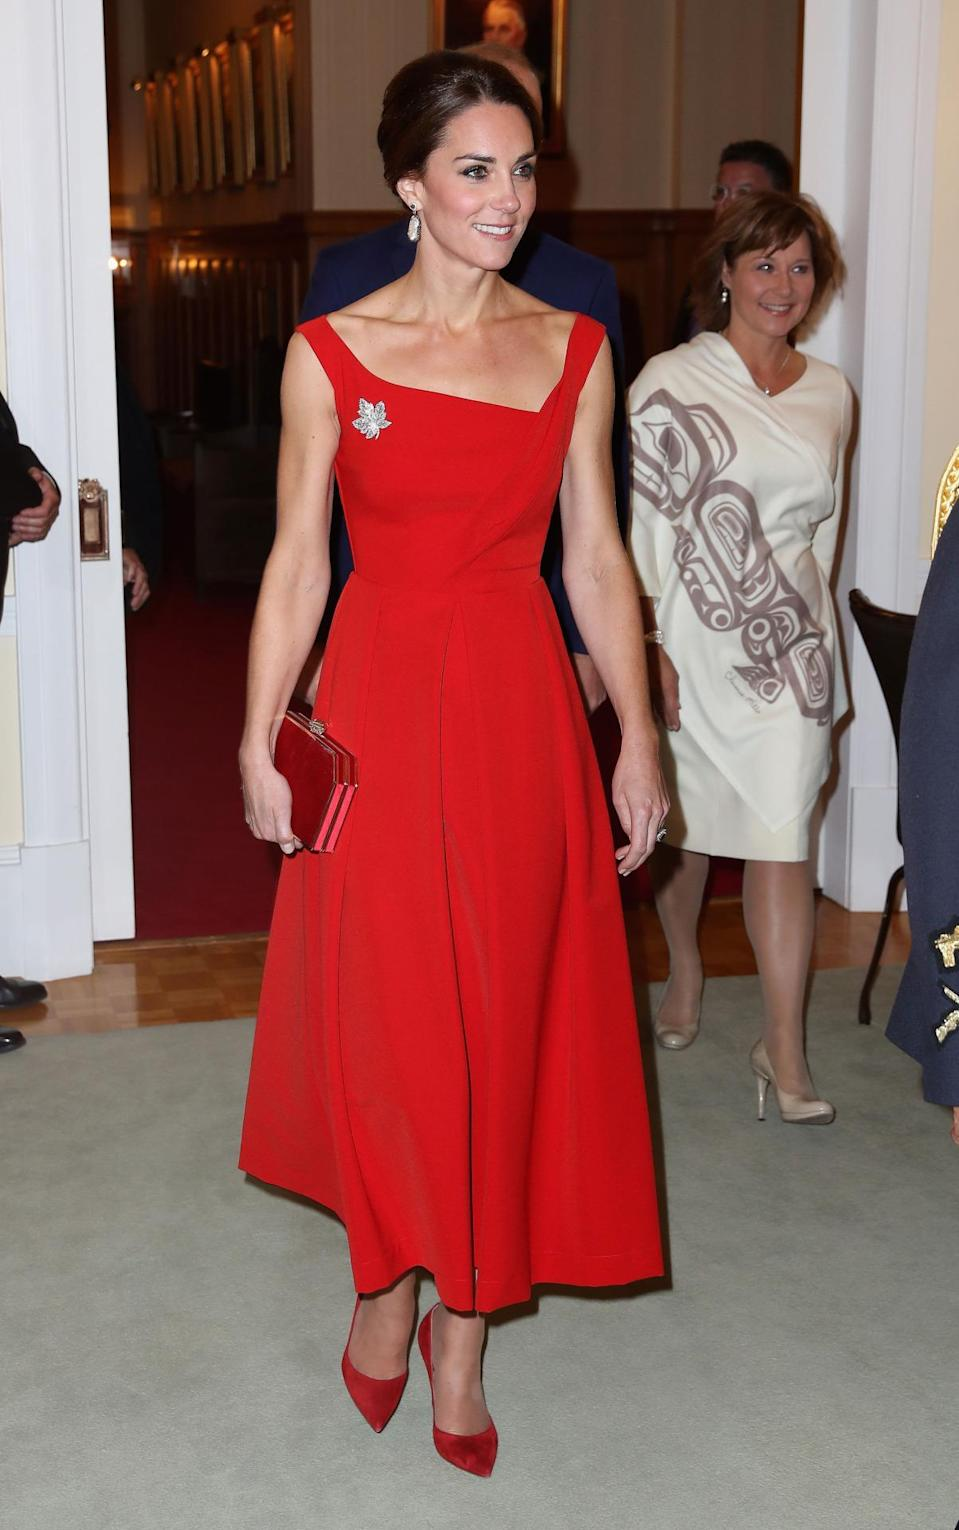 <p>The Duchess stunned in a fitted red dress by Preen for an evening reception in Canada. She finished the ensemble with a matching suede clutch and shoes.</p><p><i>[Photo: PA]</i> </p>